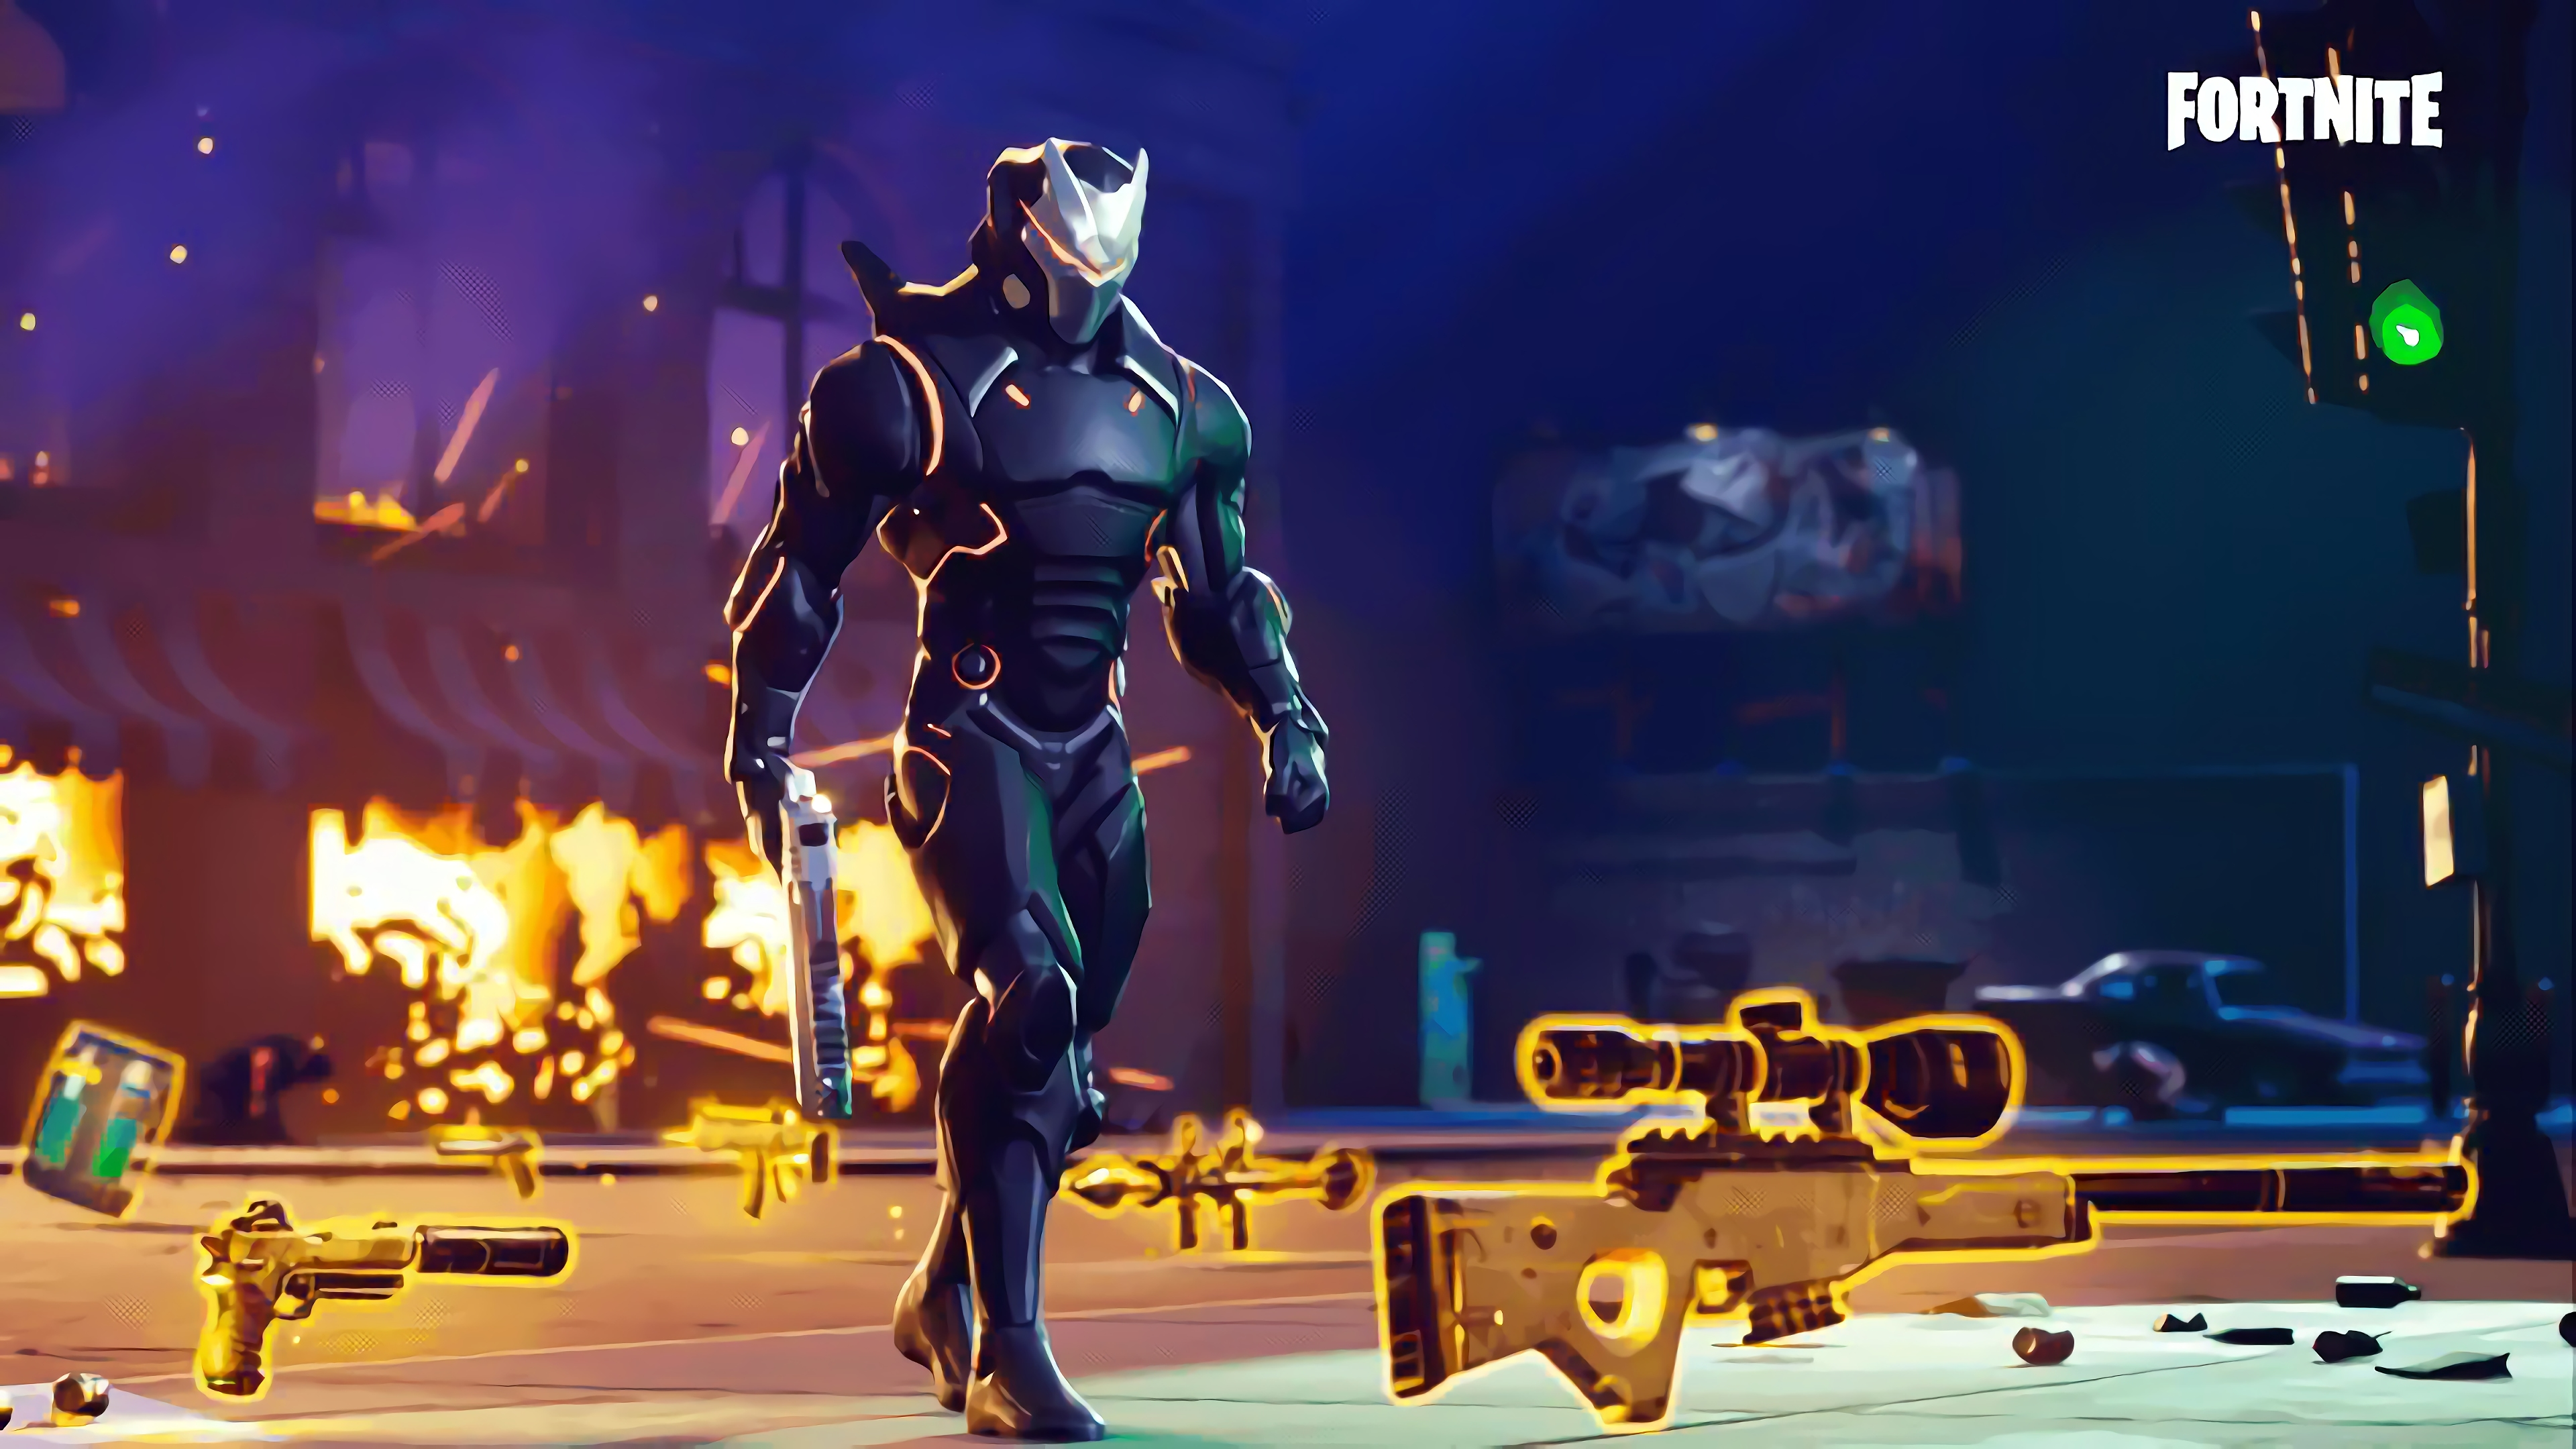 fortnite omega widescreen wallpaper 64132